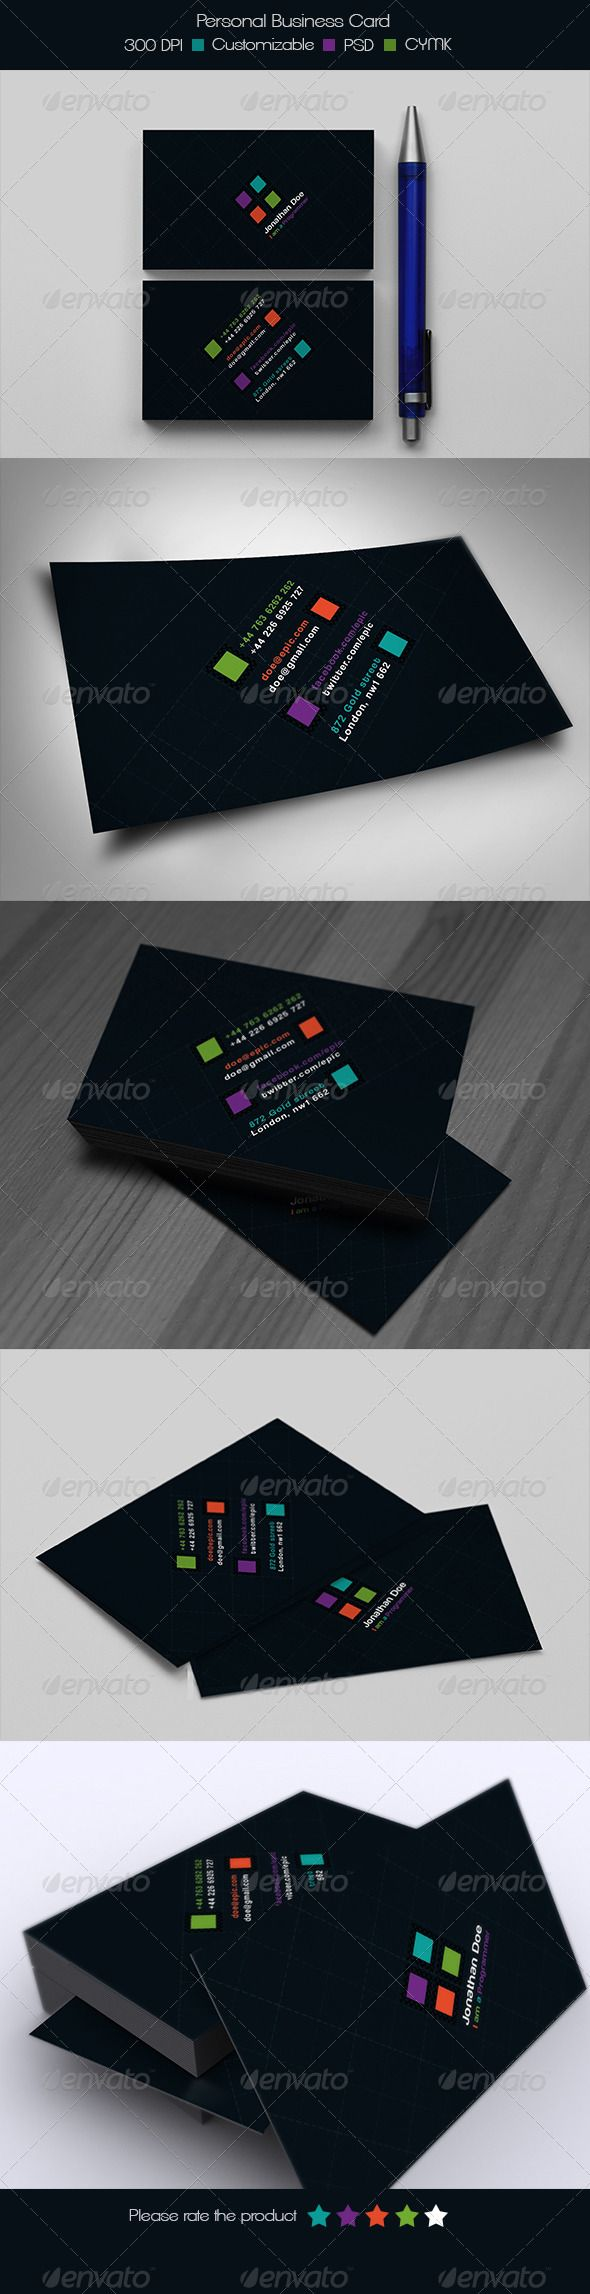 91 best print templates images on pinterest font logo print personal business card graphicriver reheart Image collections